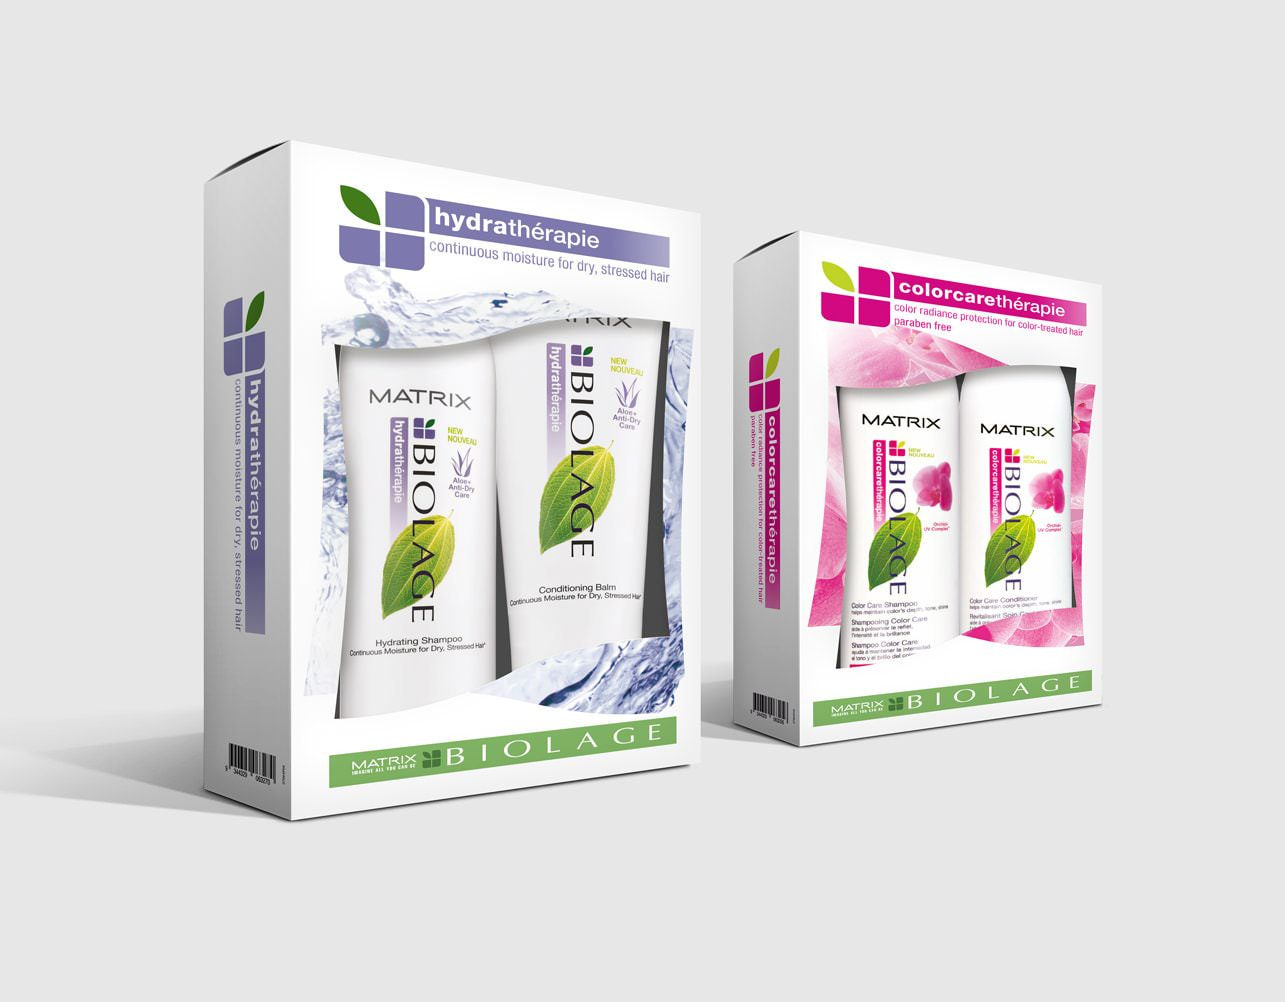 DJWFolio-Packaging_2014_Matrix_2